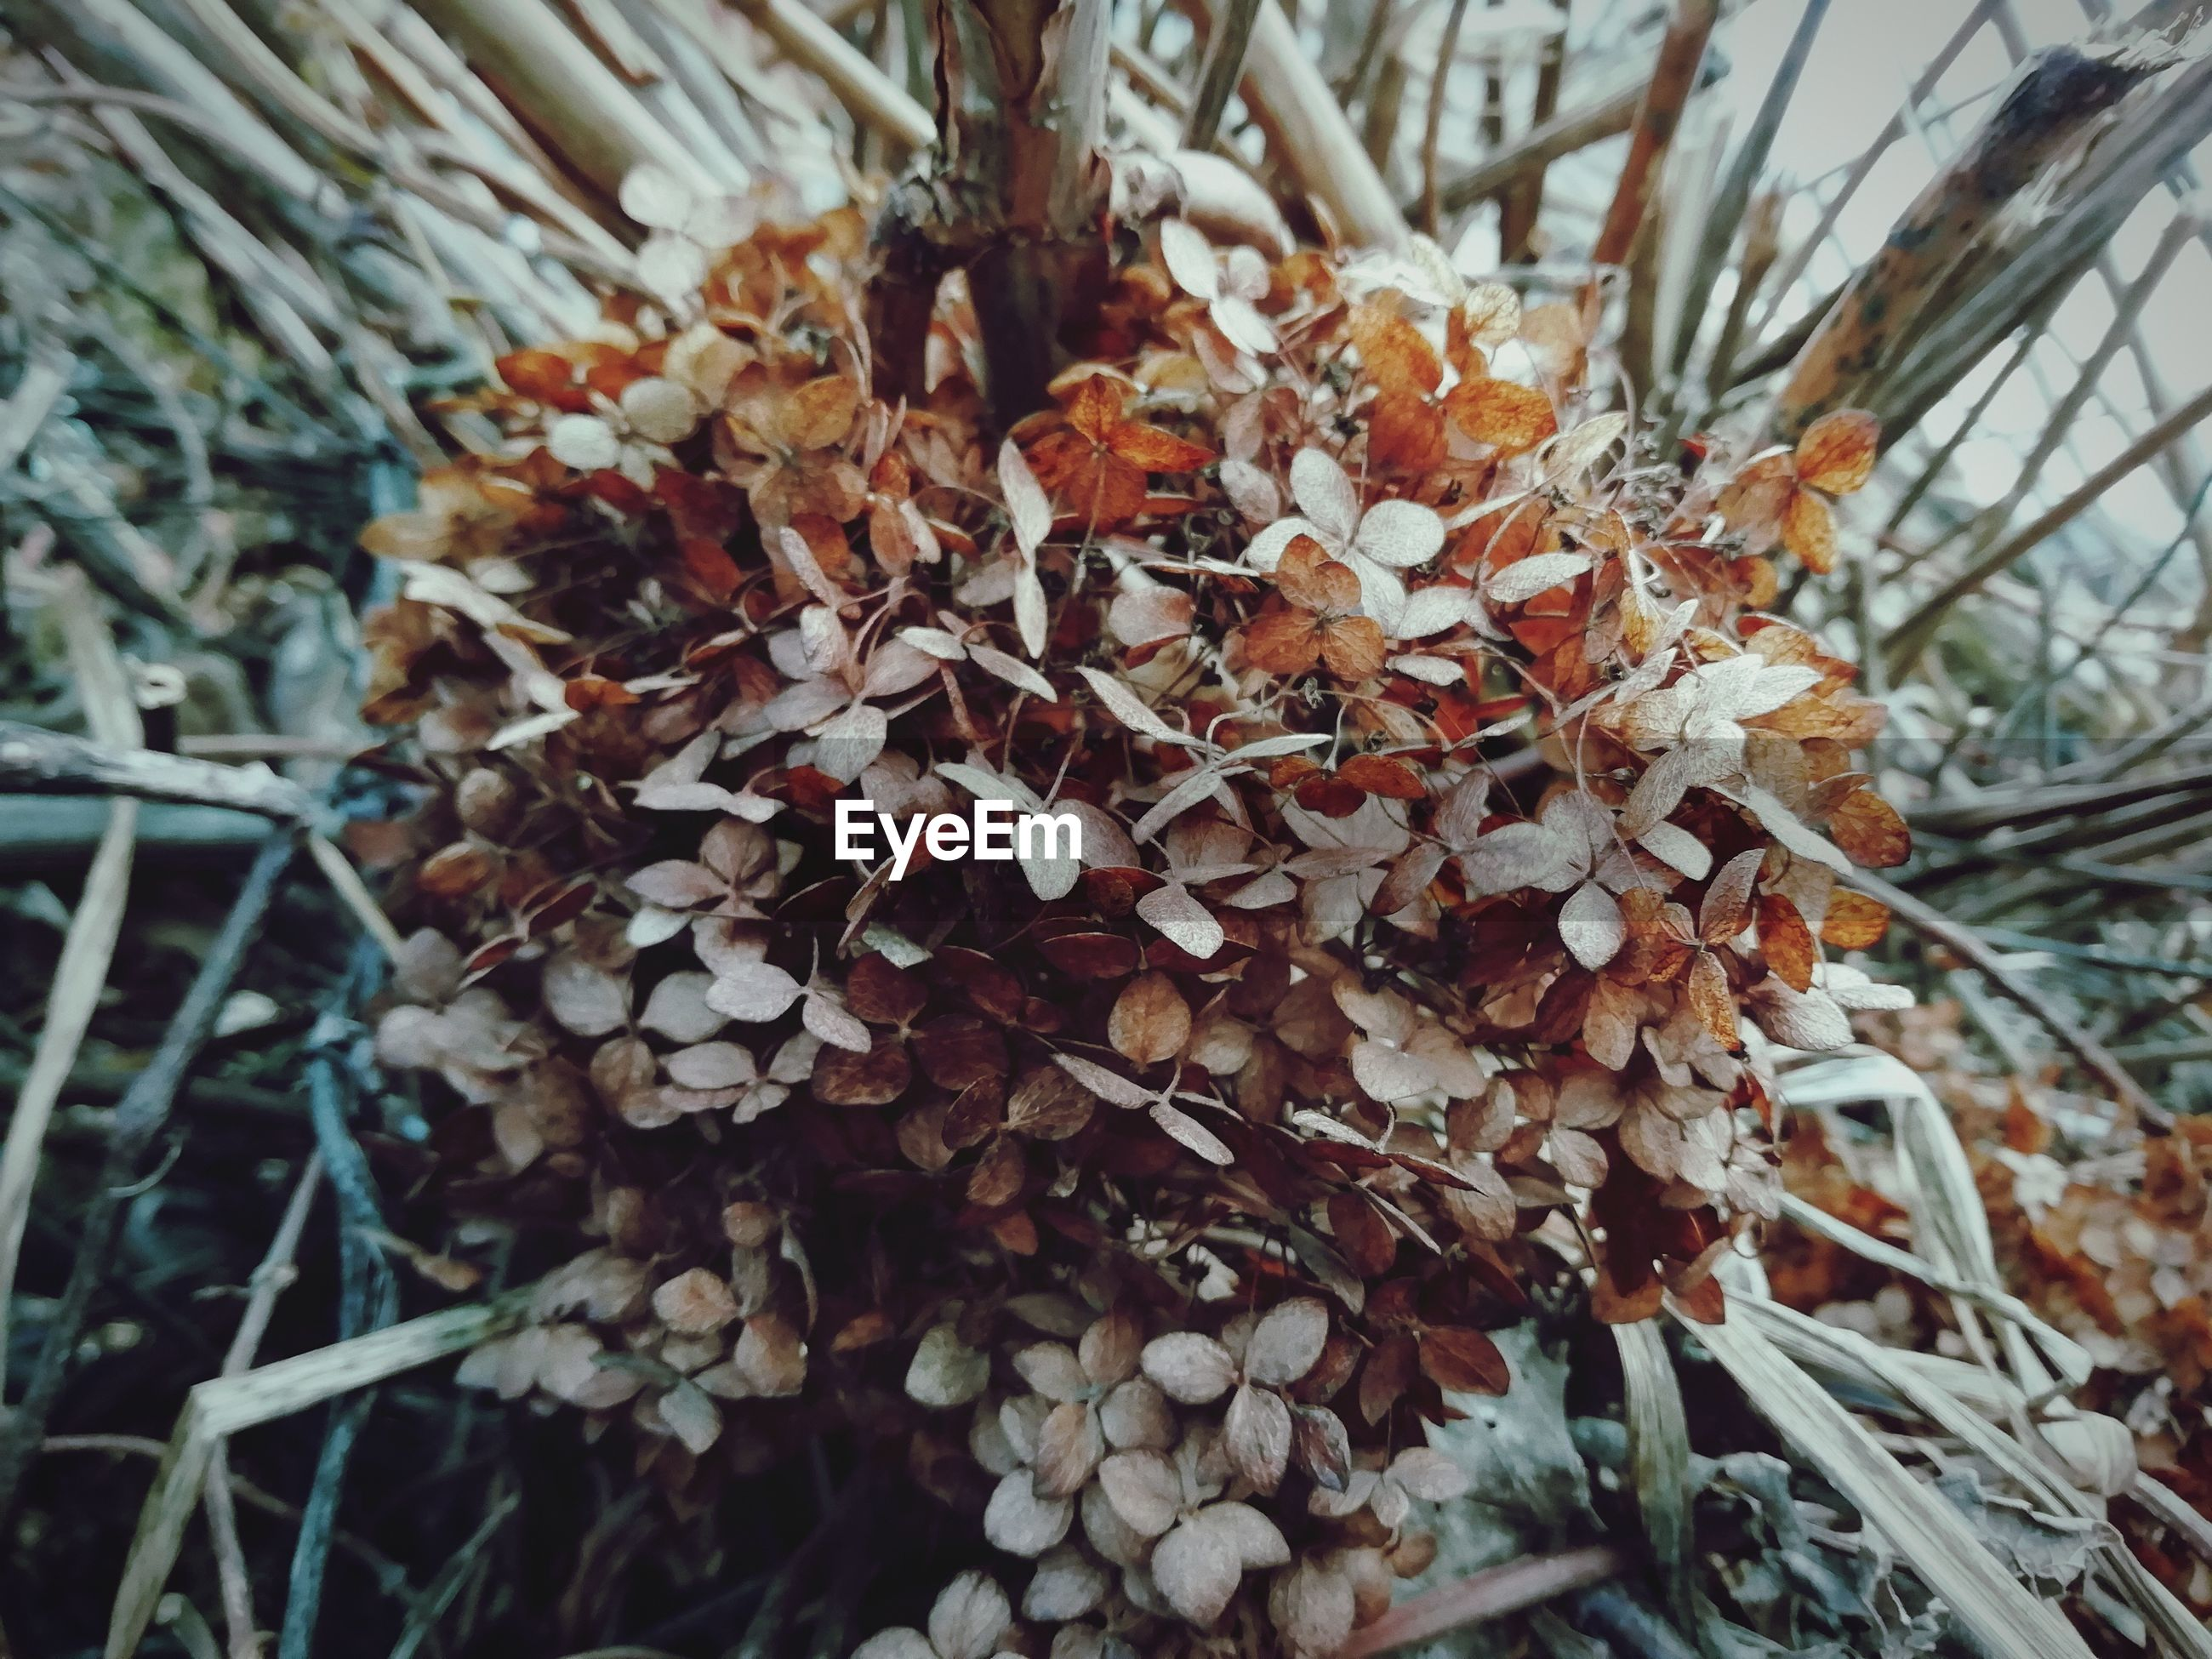 plant, growth, plant part, leaf, tree, nature, day, beauty in nature, close-up, no people, focus on foreground, outdoors, dry, branch, selective focus, autumn, change, tranquility, vulnerability, fragility, leaves, coniferous tree